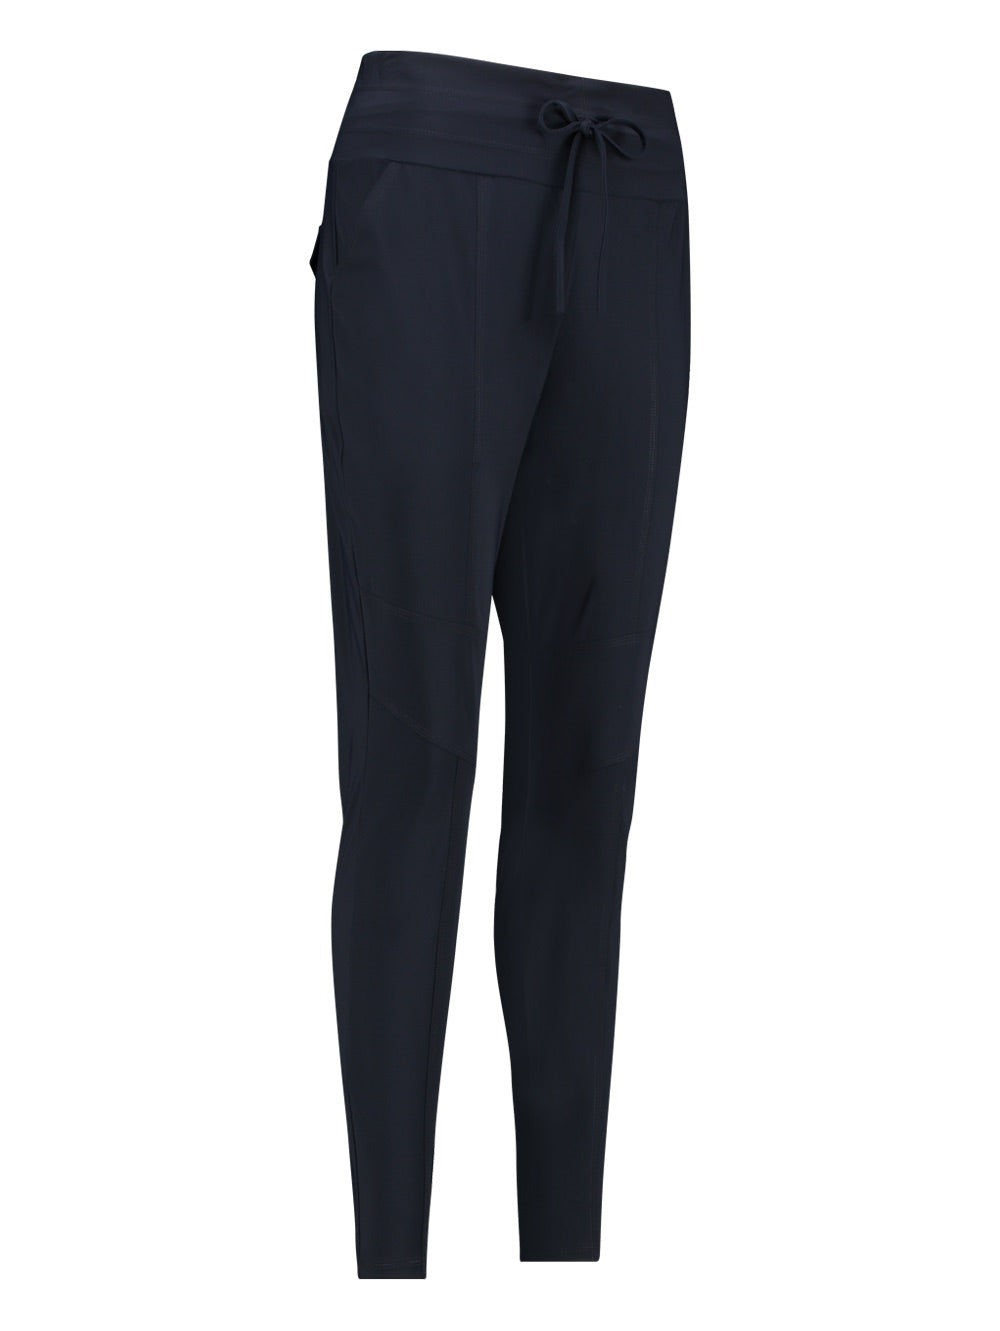 New Franka trouser 6900 Dark Blue